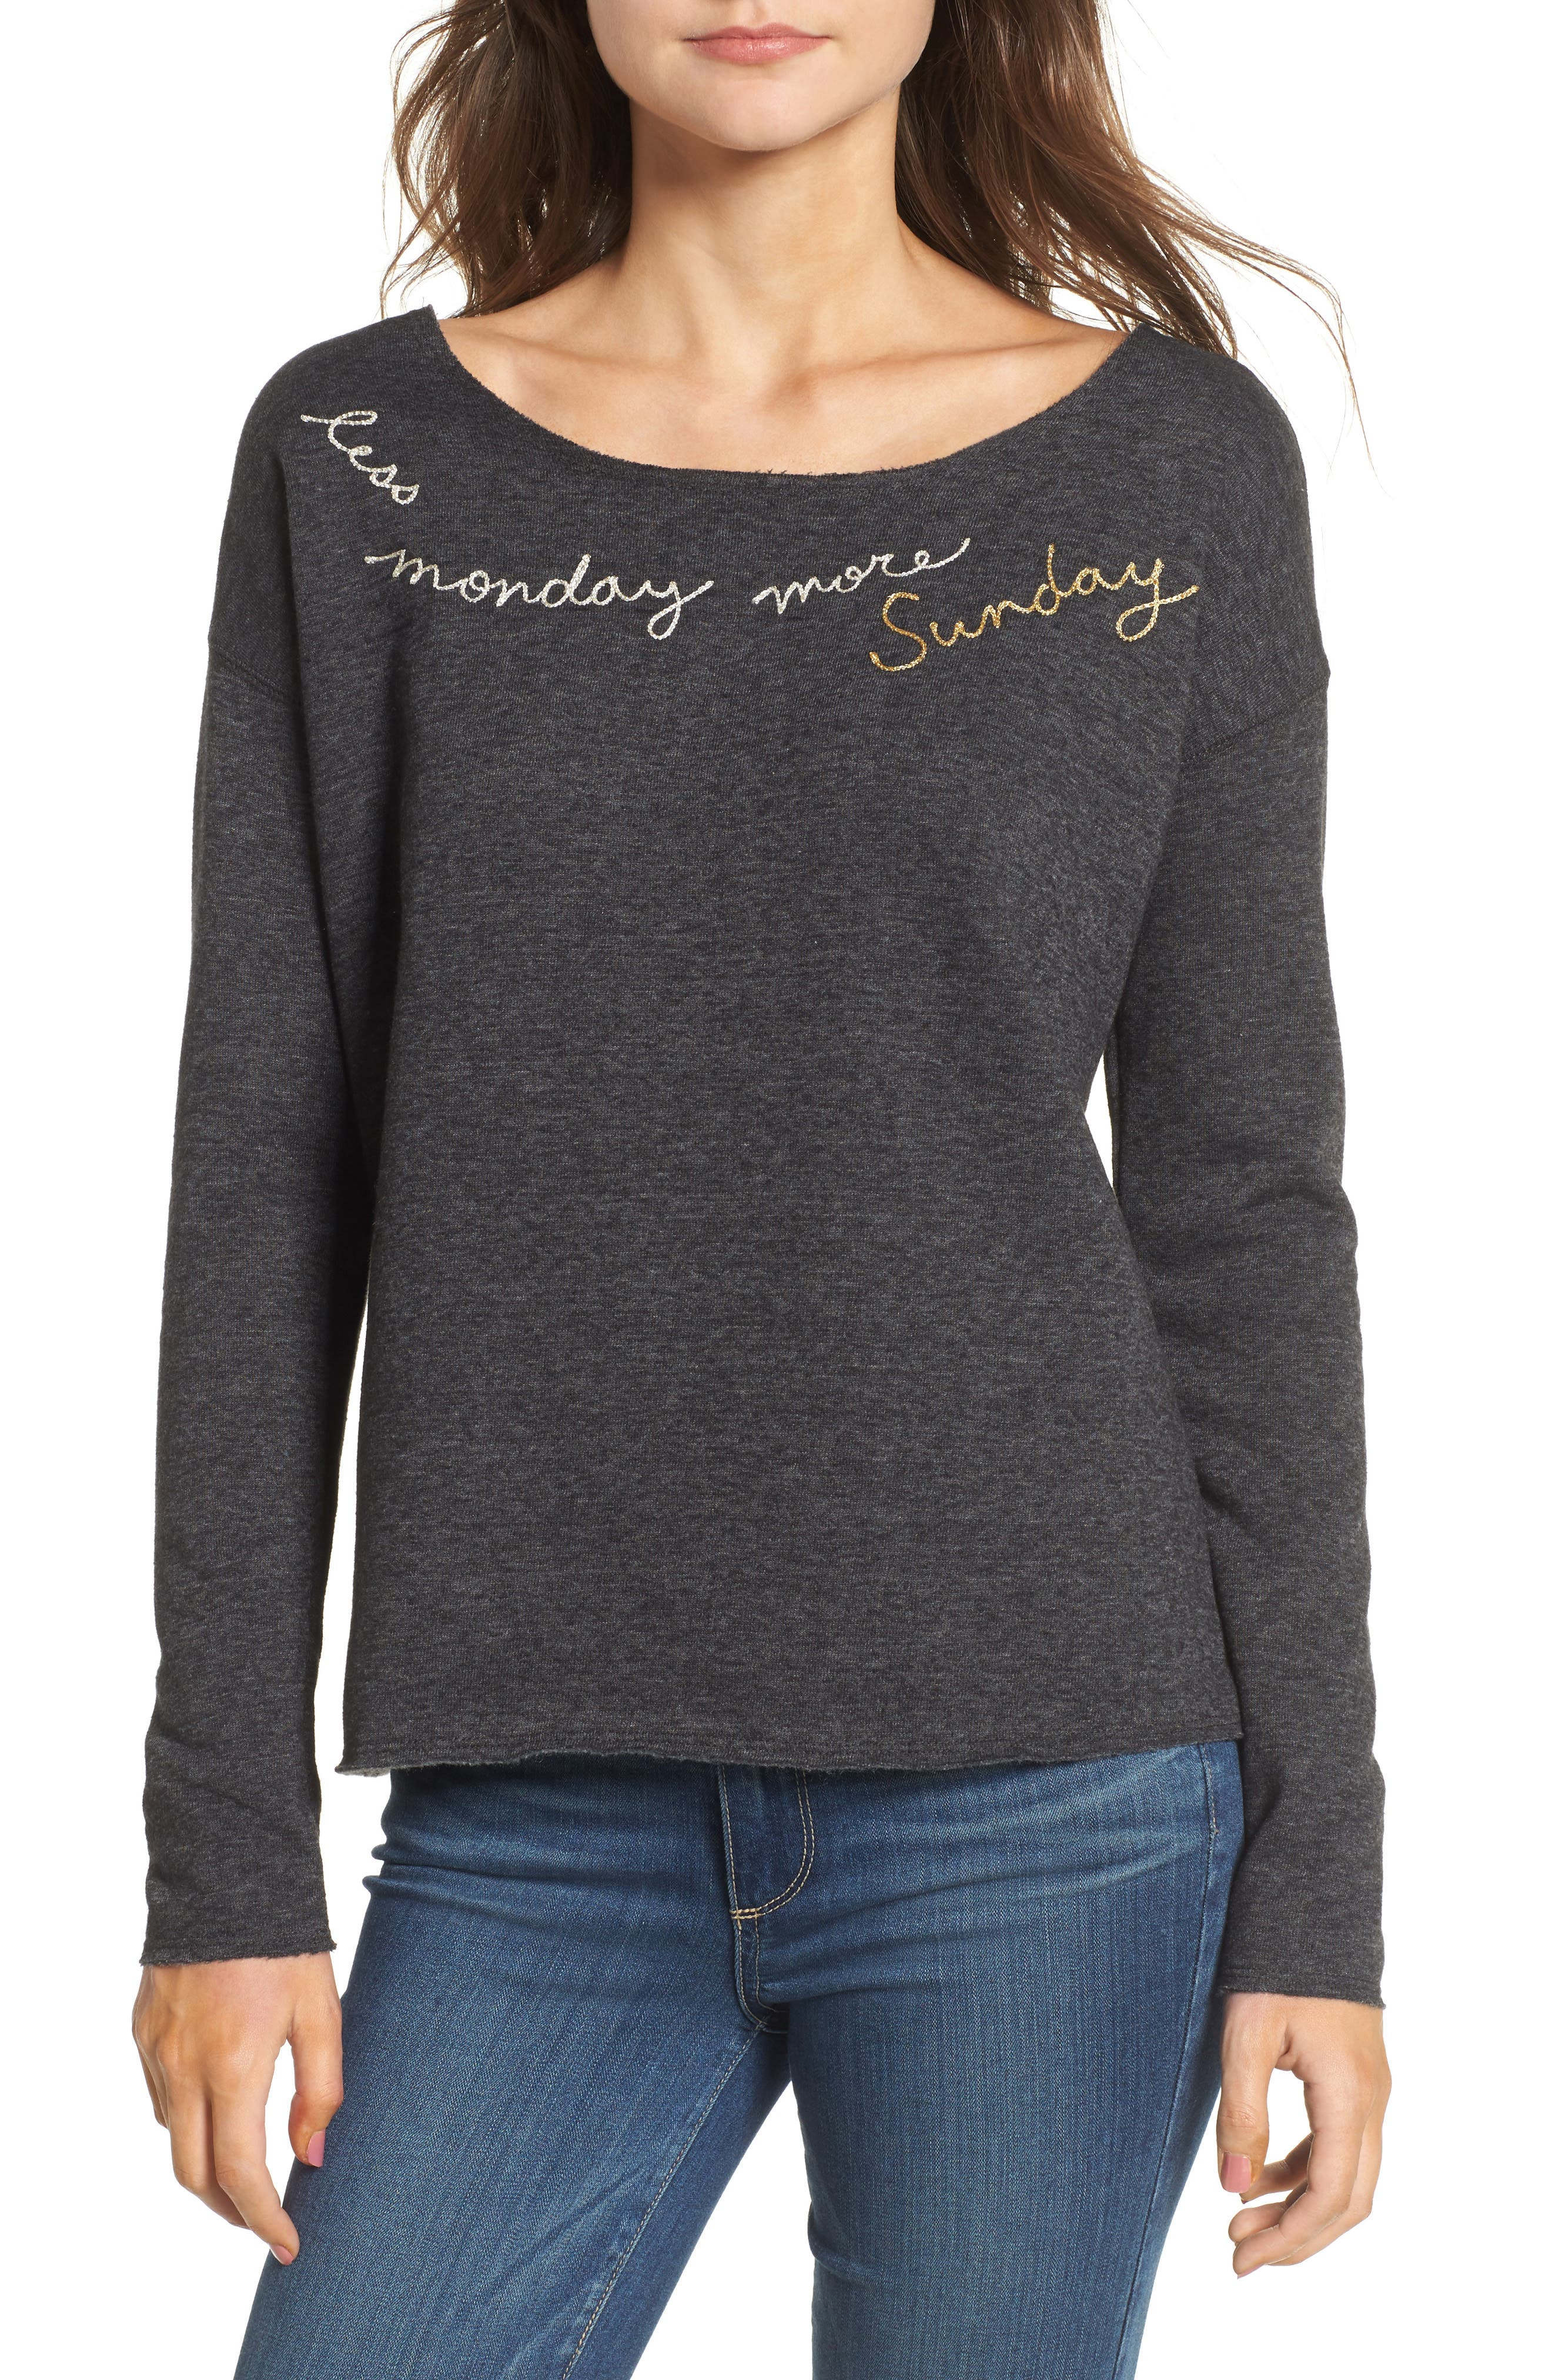 Less Monday More Sunday Sweatshirt,                             Main thumbnail 1, color,                             Charcoal